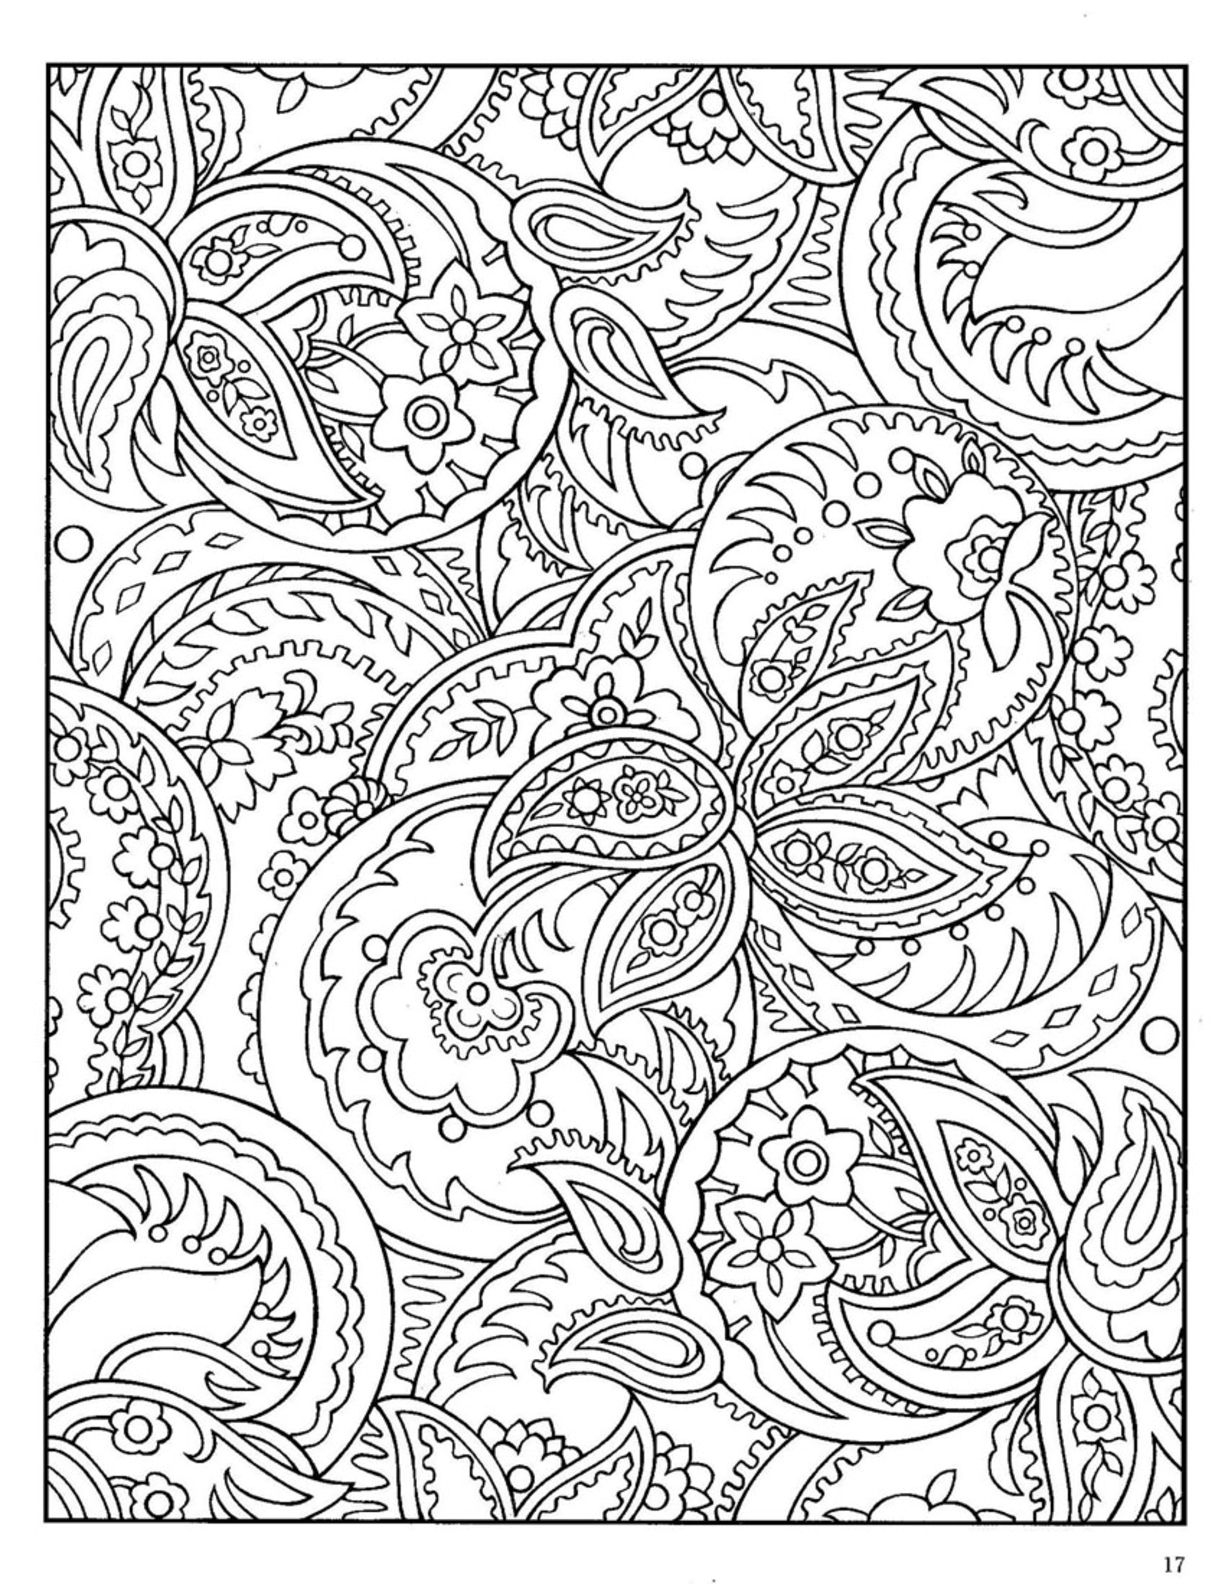 coloring book for adults easy coloring pages for young adults at getcoloringscom free easy coloring for adults book